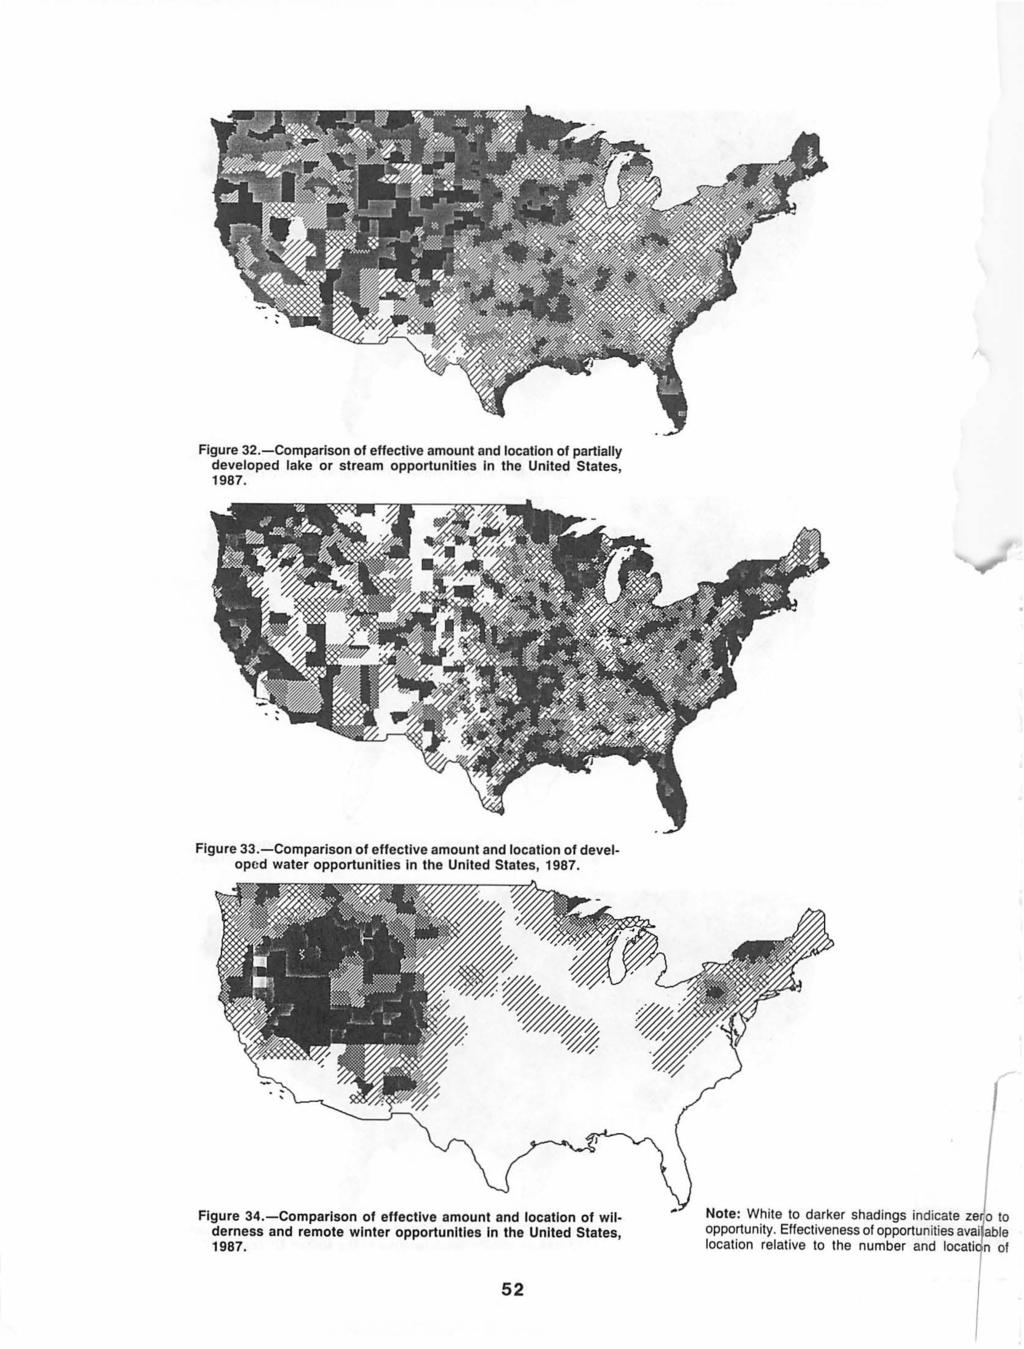 Figure 32.-Comparison of effective amount and location of partially developed lake or stream opportunities in the United States, 1987. Figure 33.